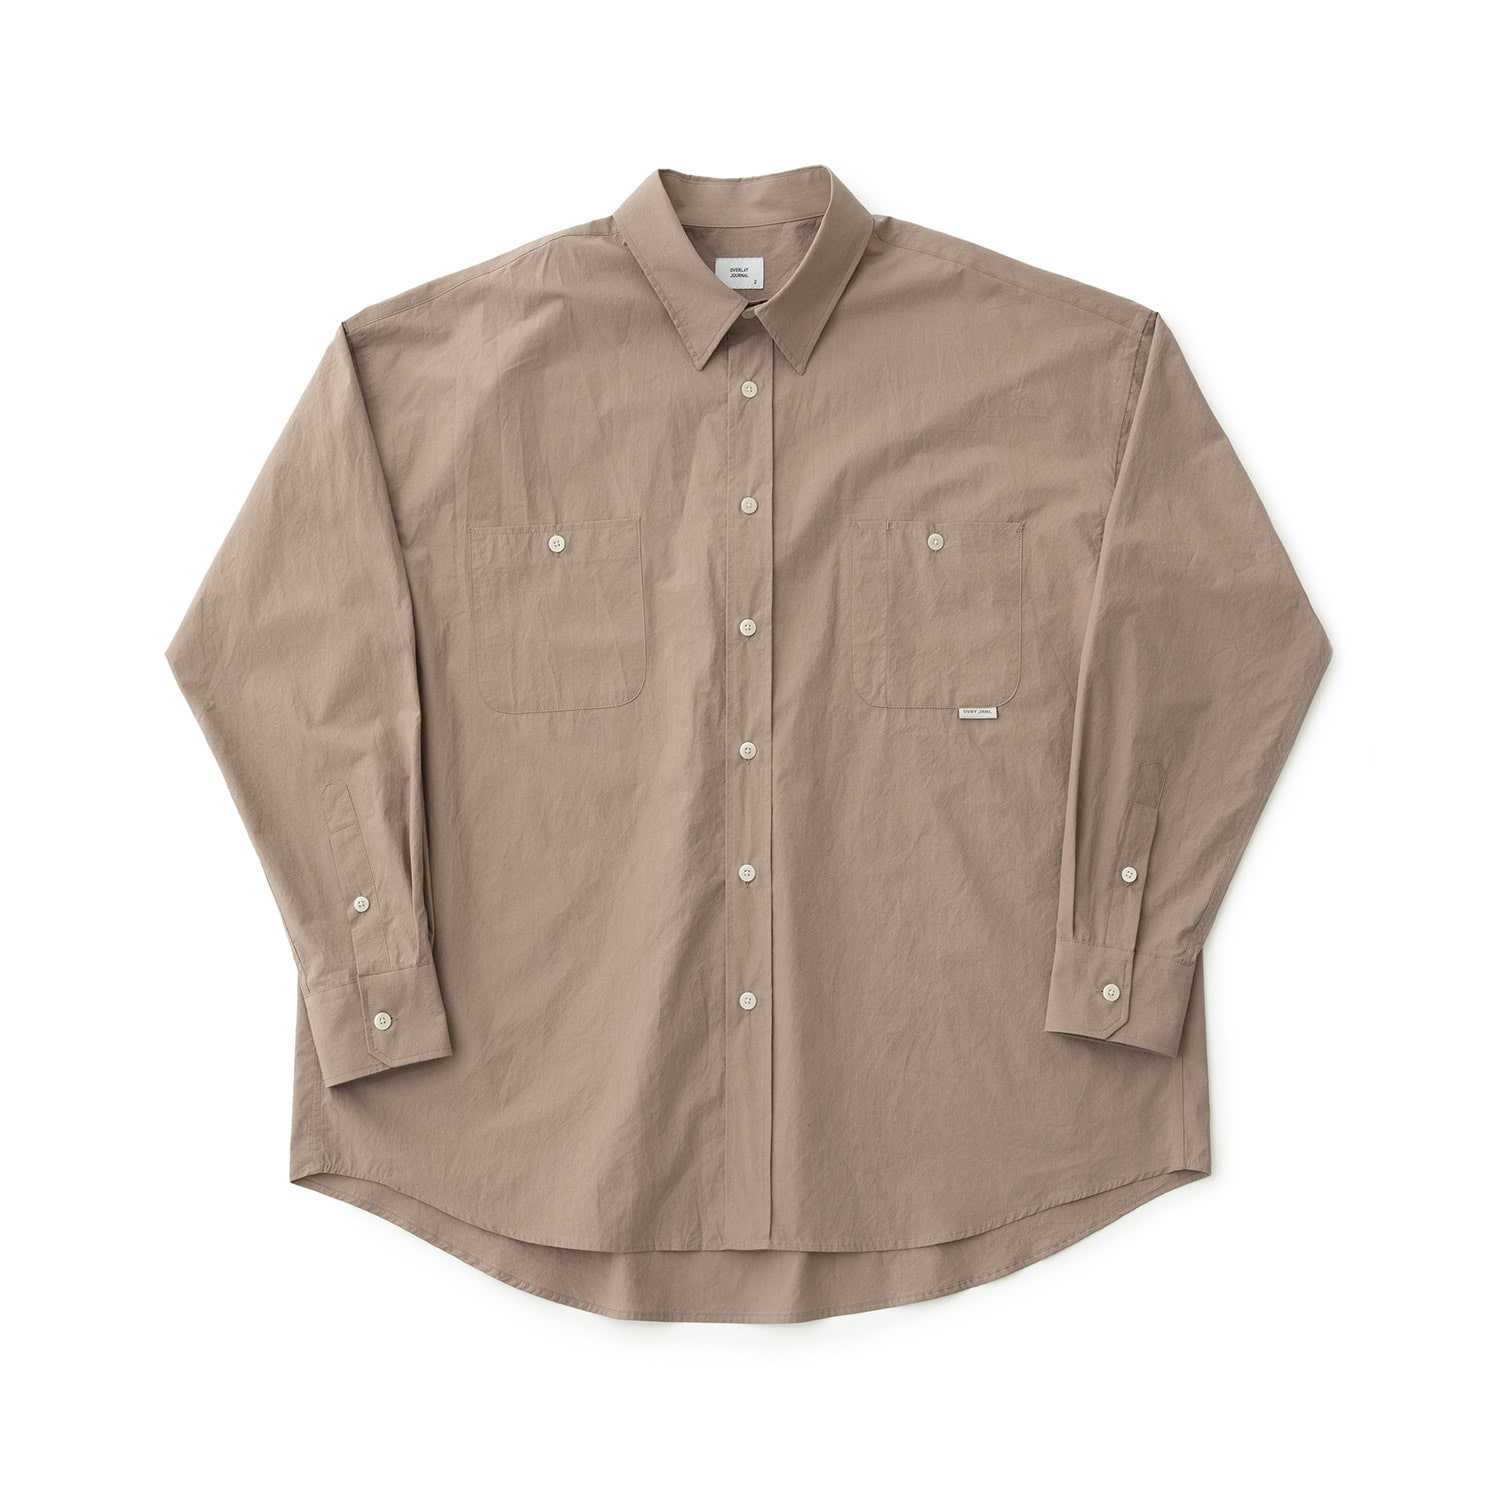 Broad Comfort Shirt (Taupe)